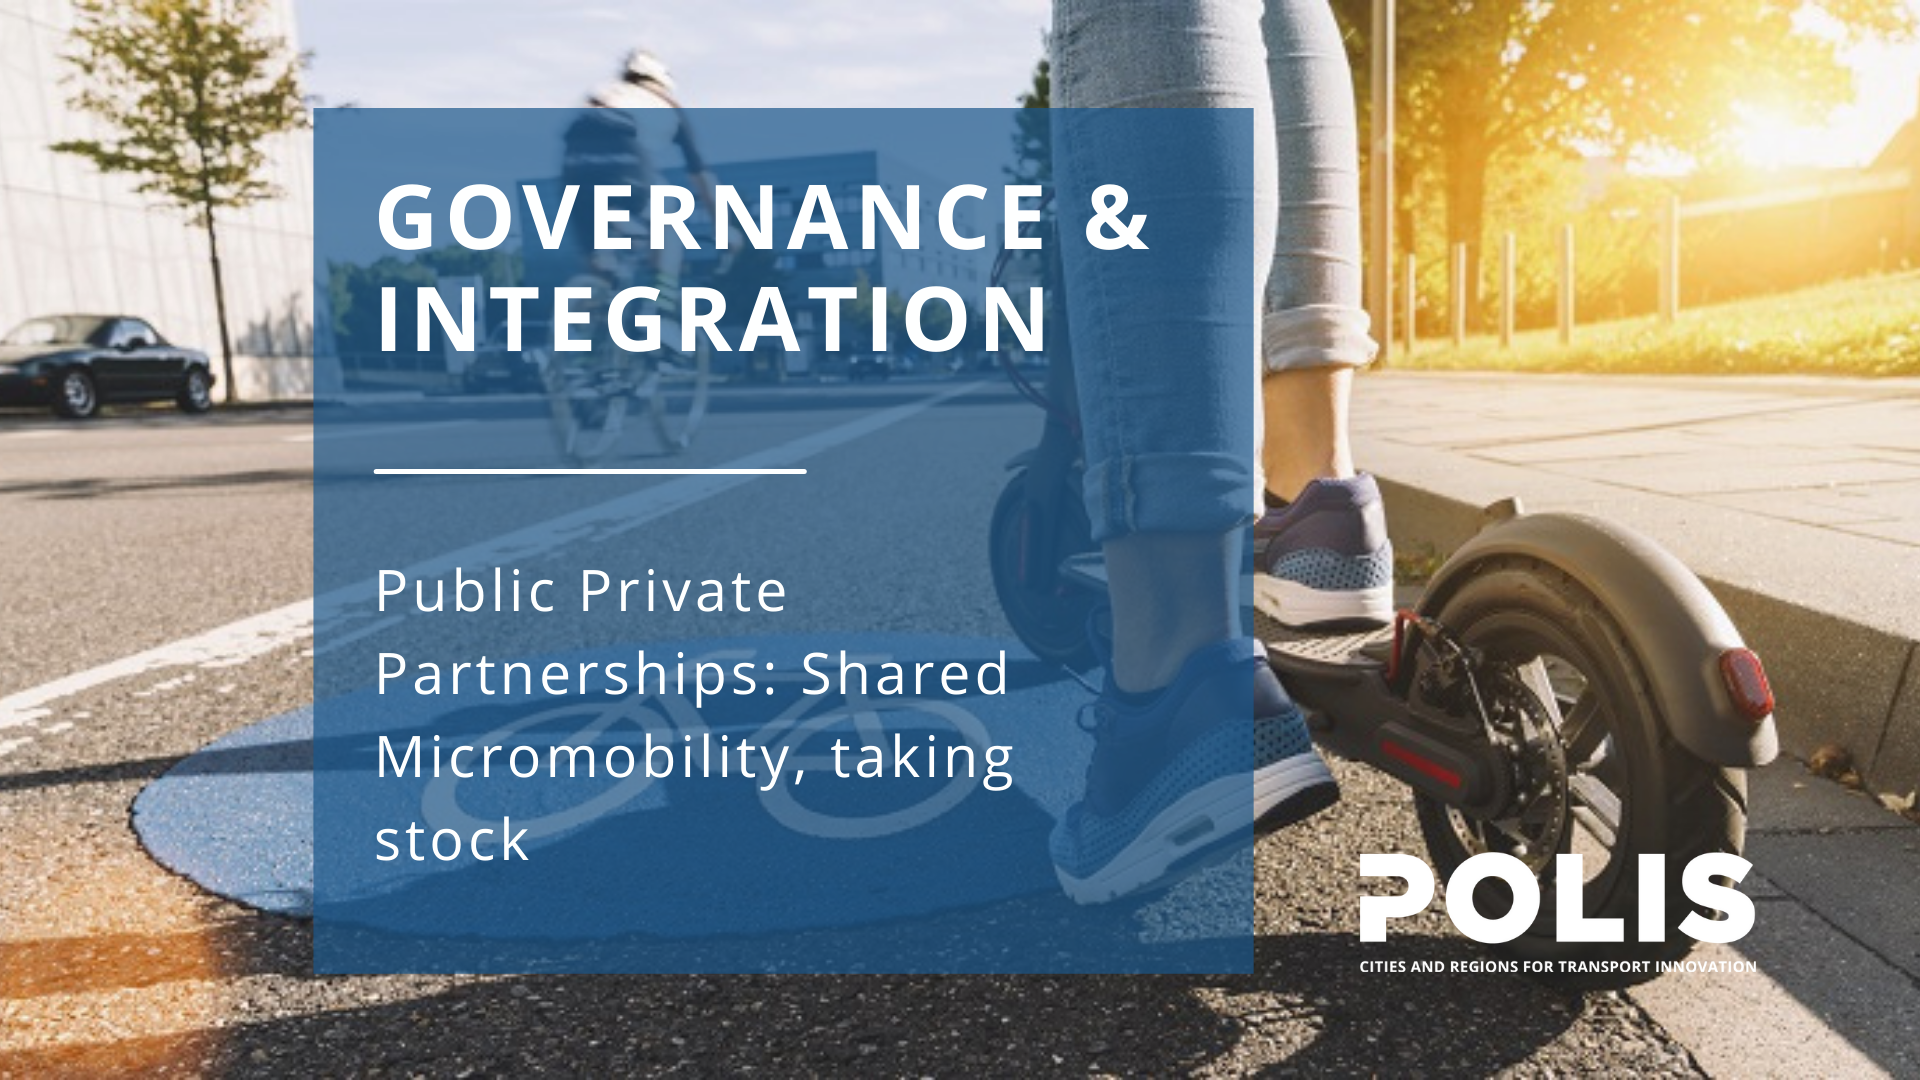 Public Private Partnerships: Shared Micromobility, taking stock